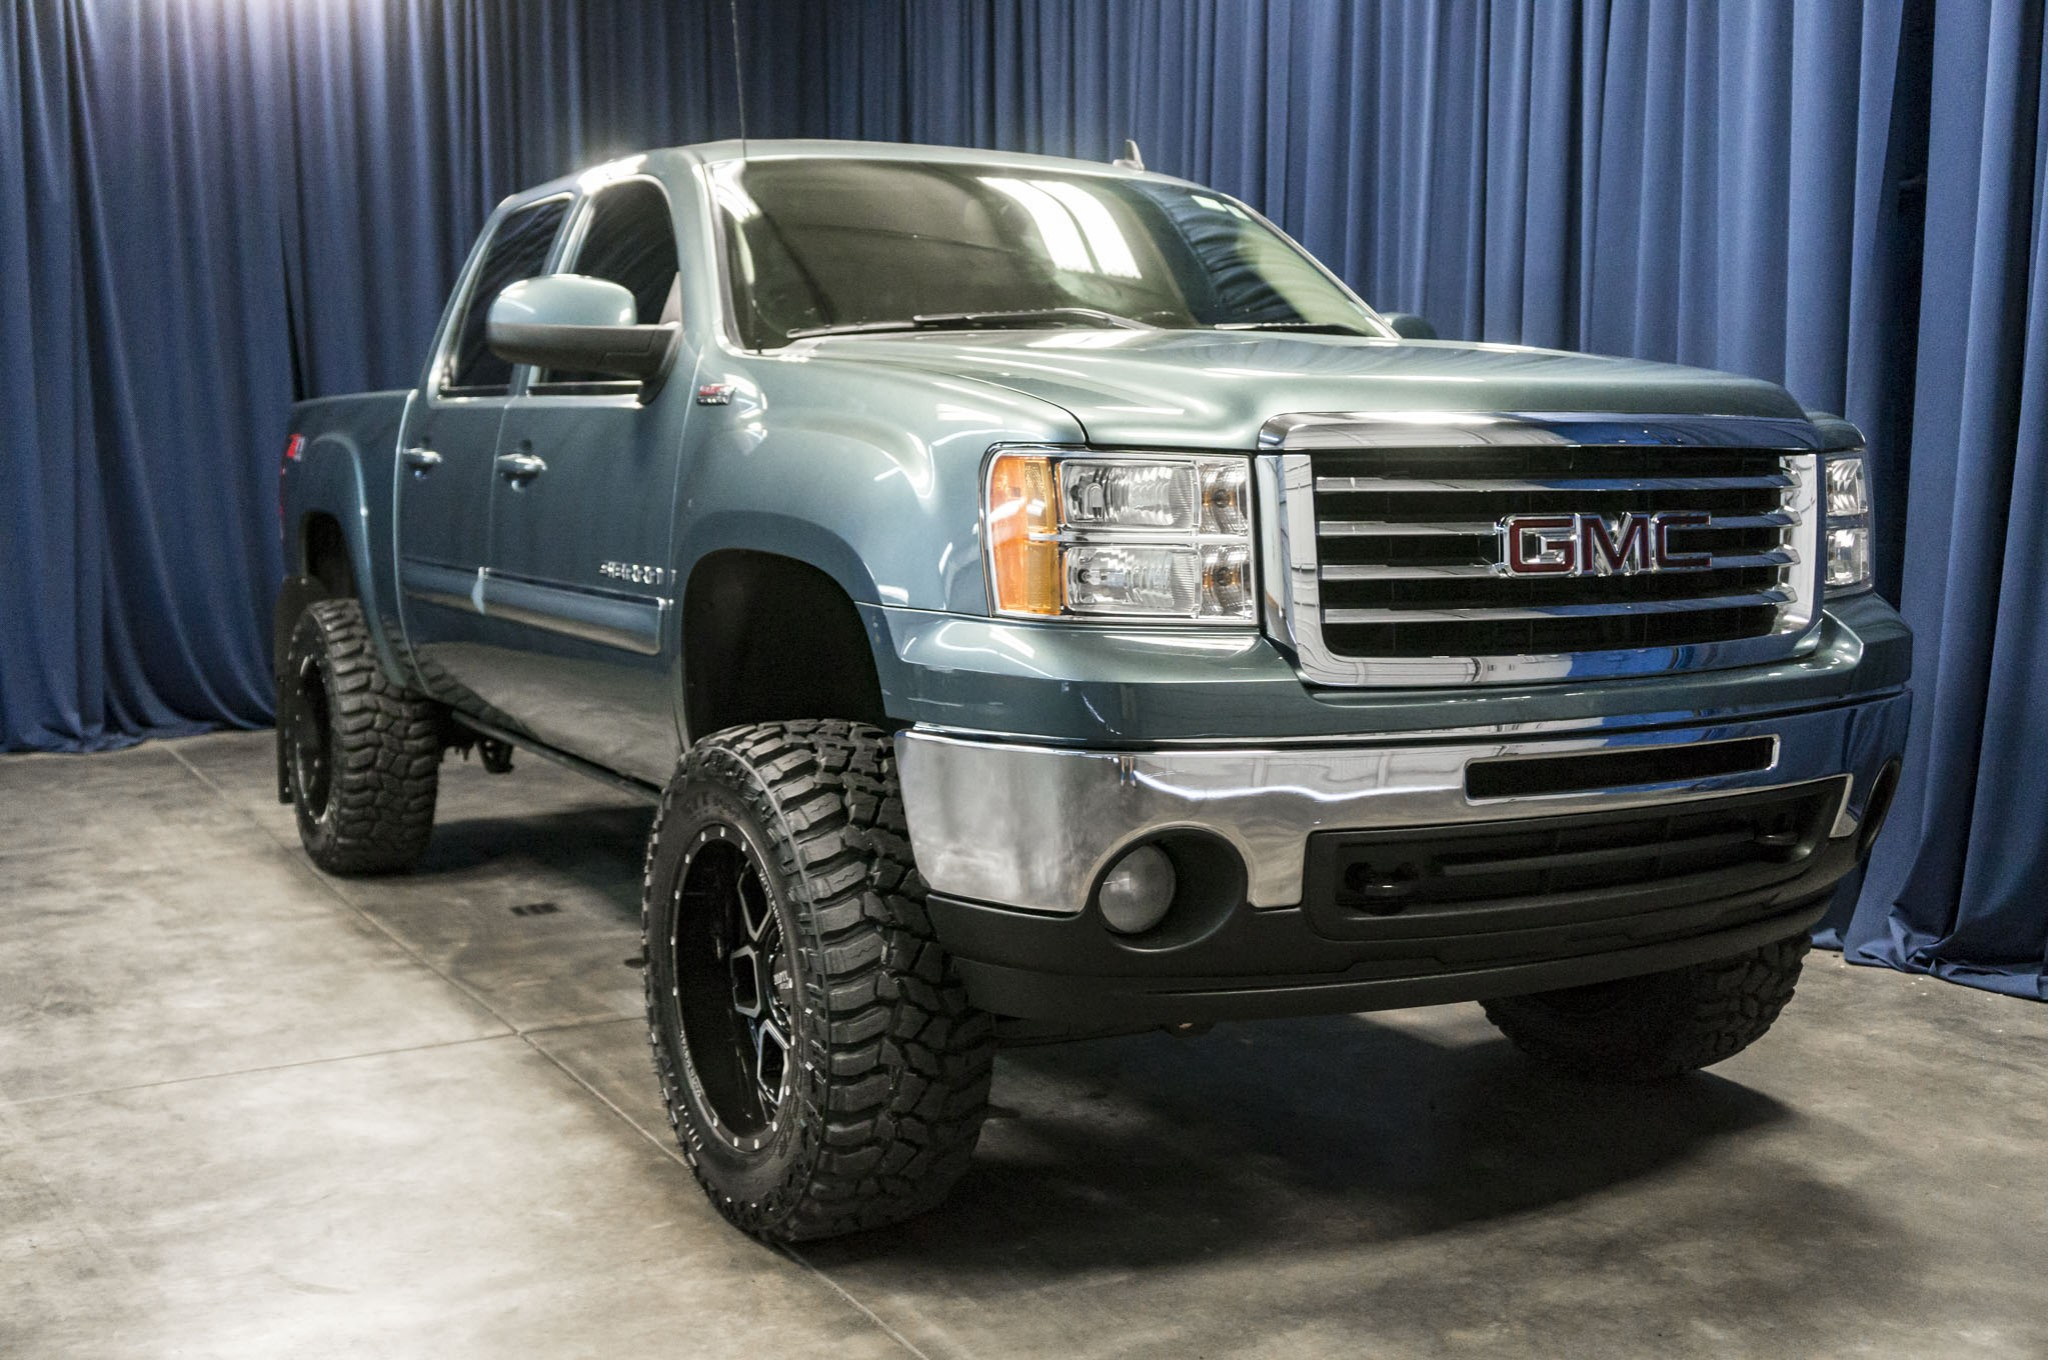 Used Lifted 2011 GMC Sierra 1500 All Terrain 4x4 Truck For